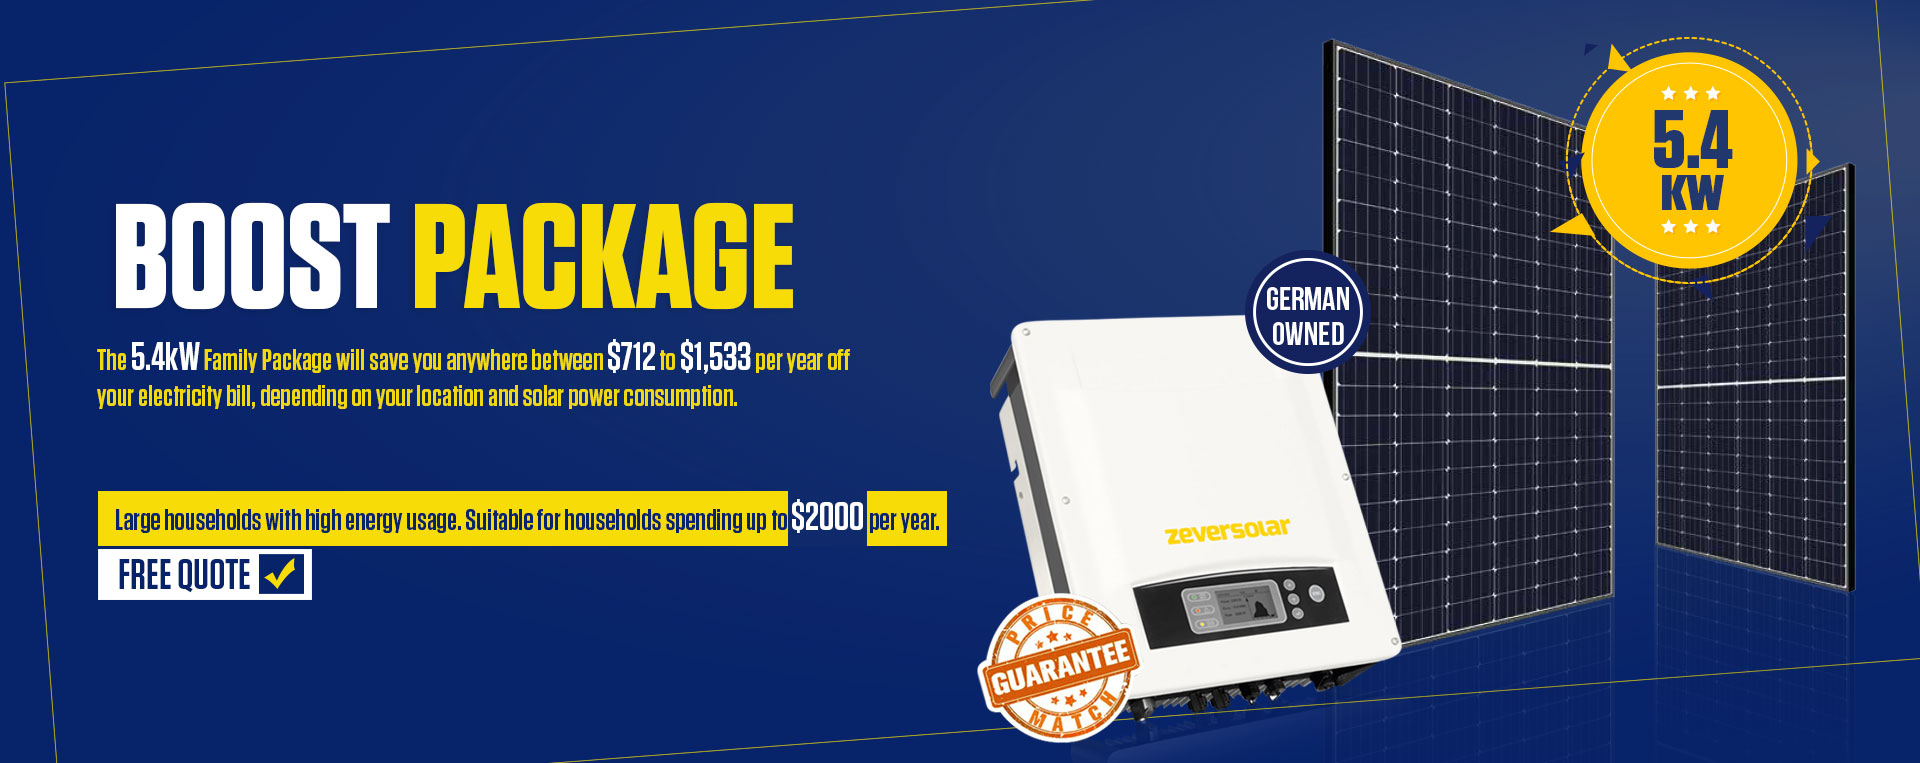 5.4 KW Family Package